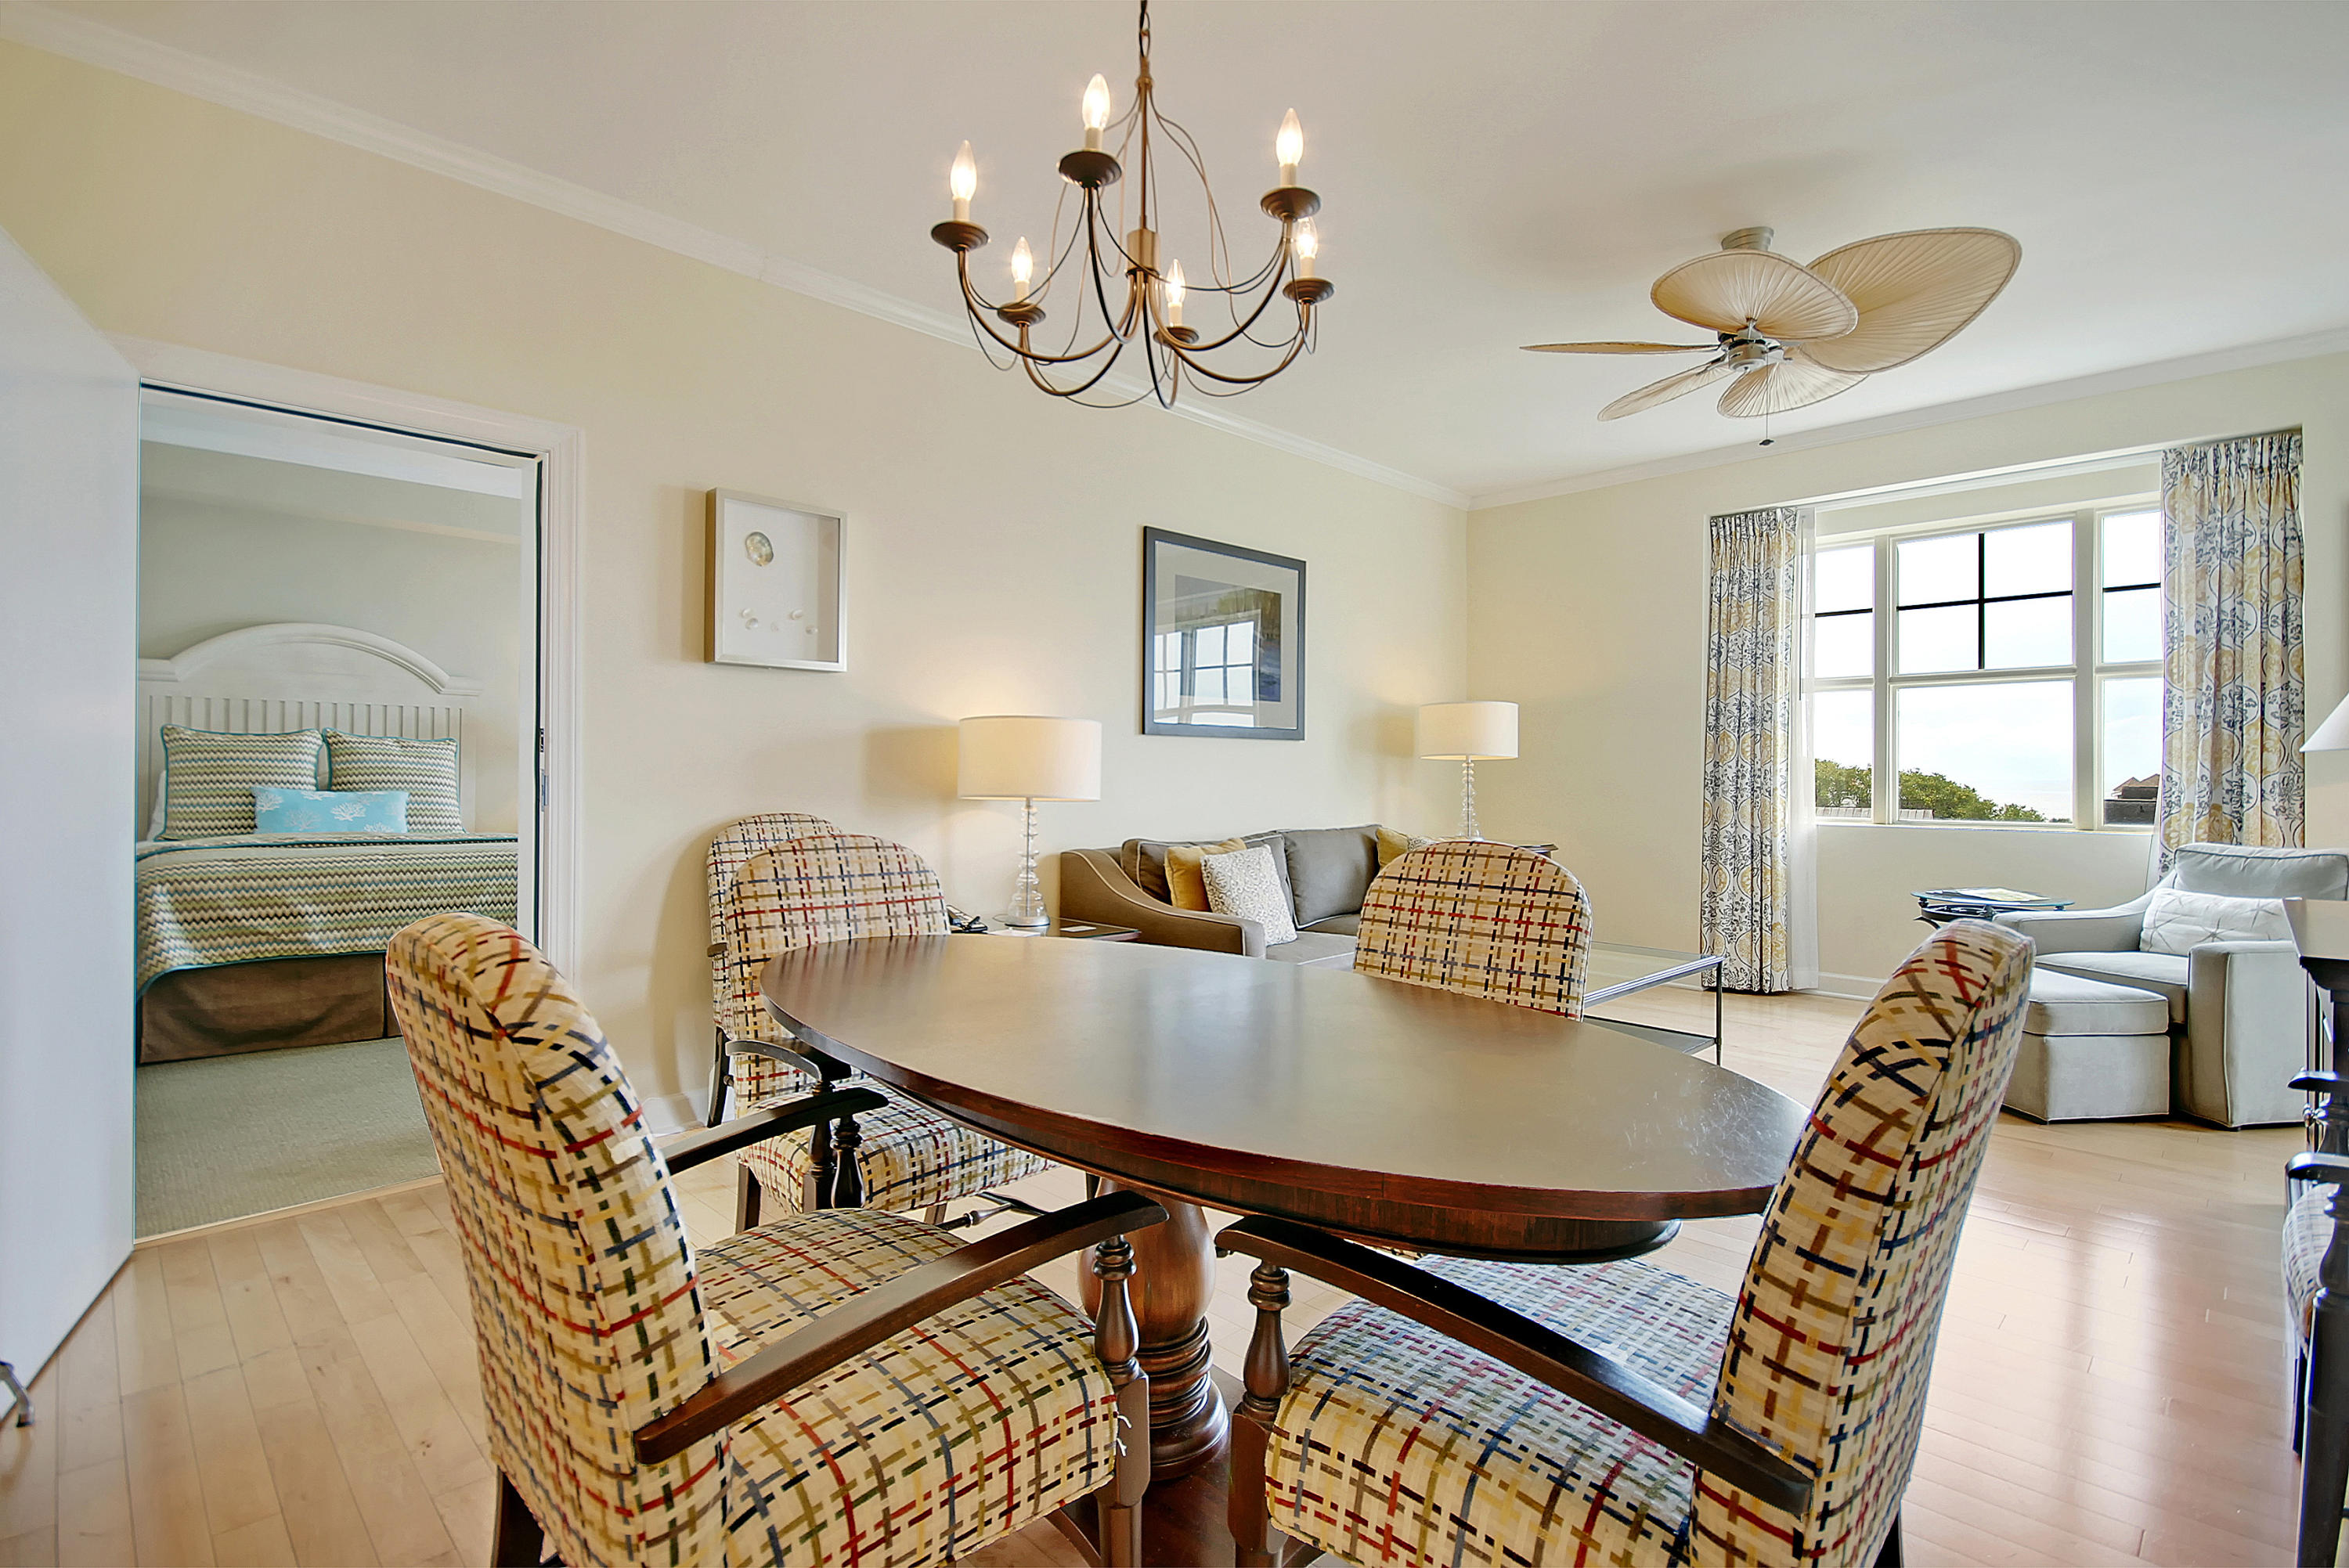 Wild Dunes Homes For Sale - 415/417-B The Village At Wild Dunes, Isle of Palms, SC - 9